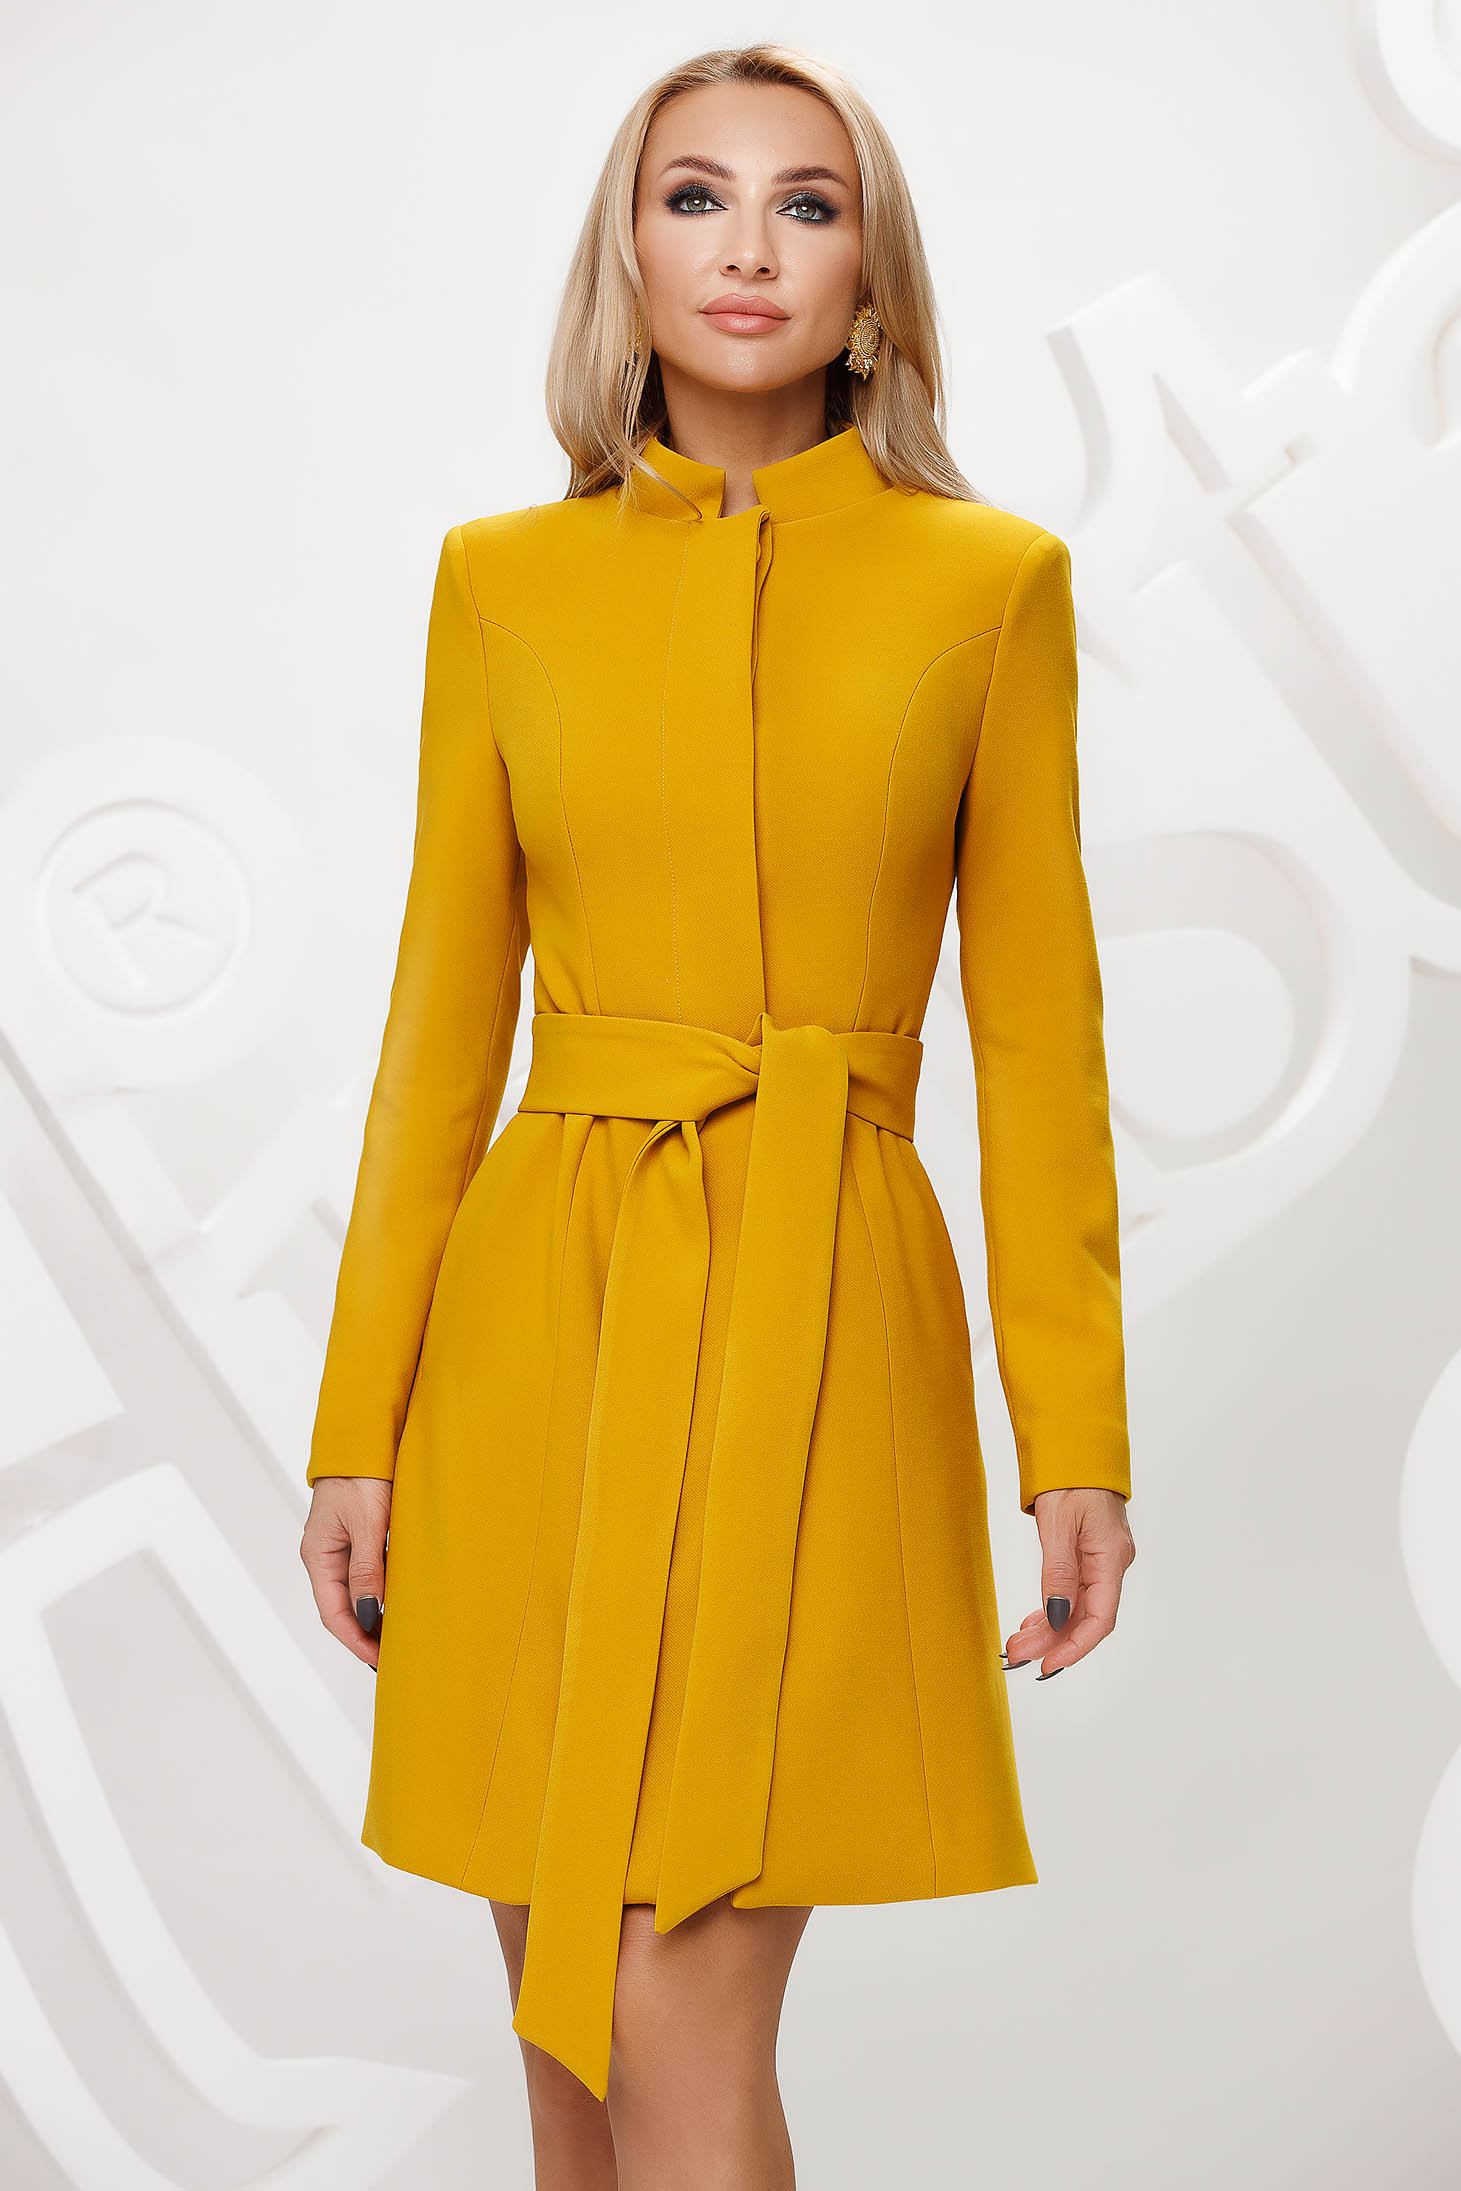 Mustard trenchcoat tented short cut elegant accessorized with tied waistband bow accessory